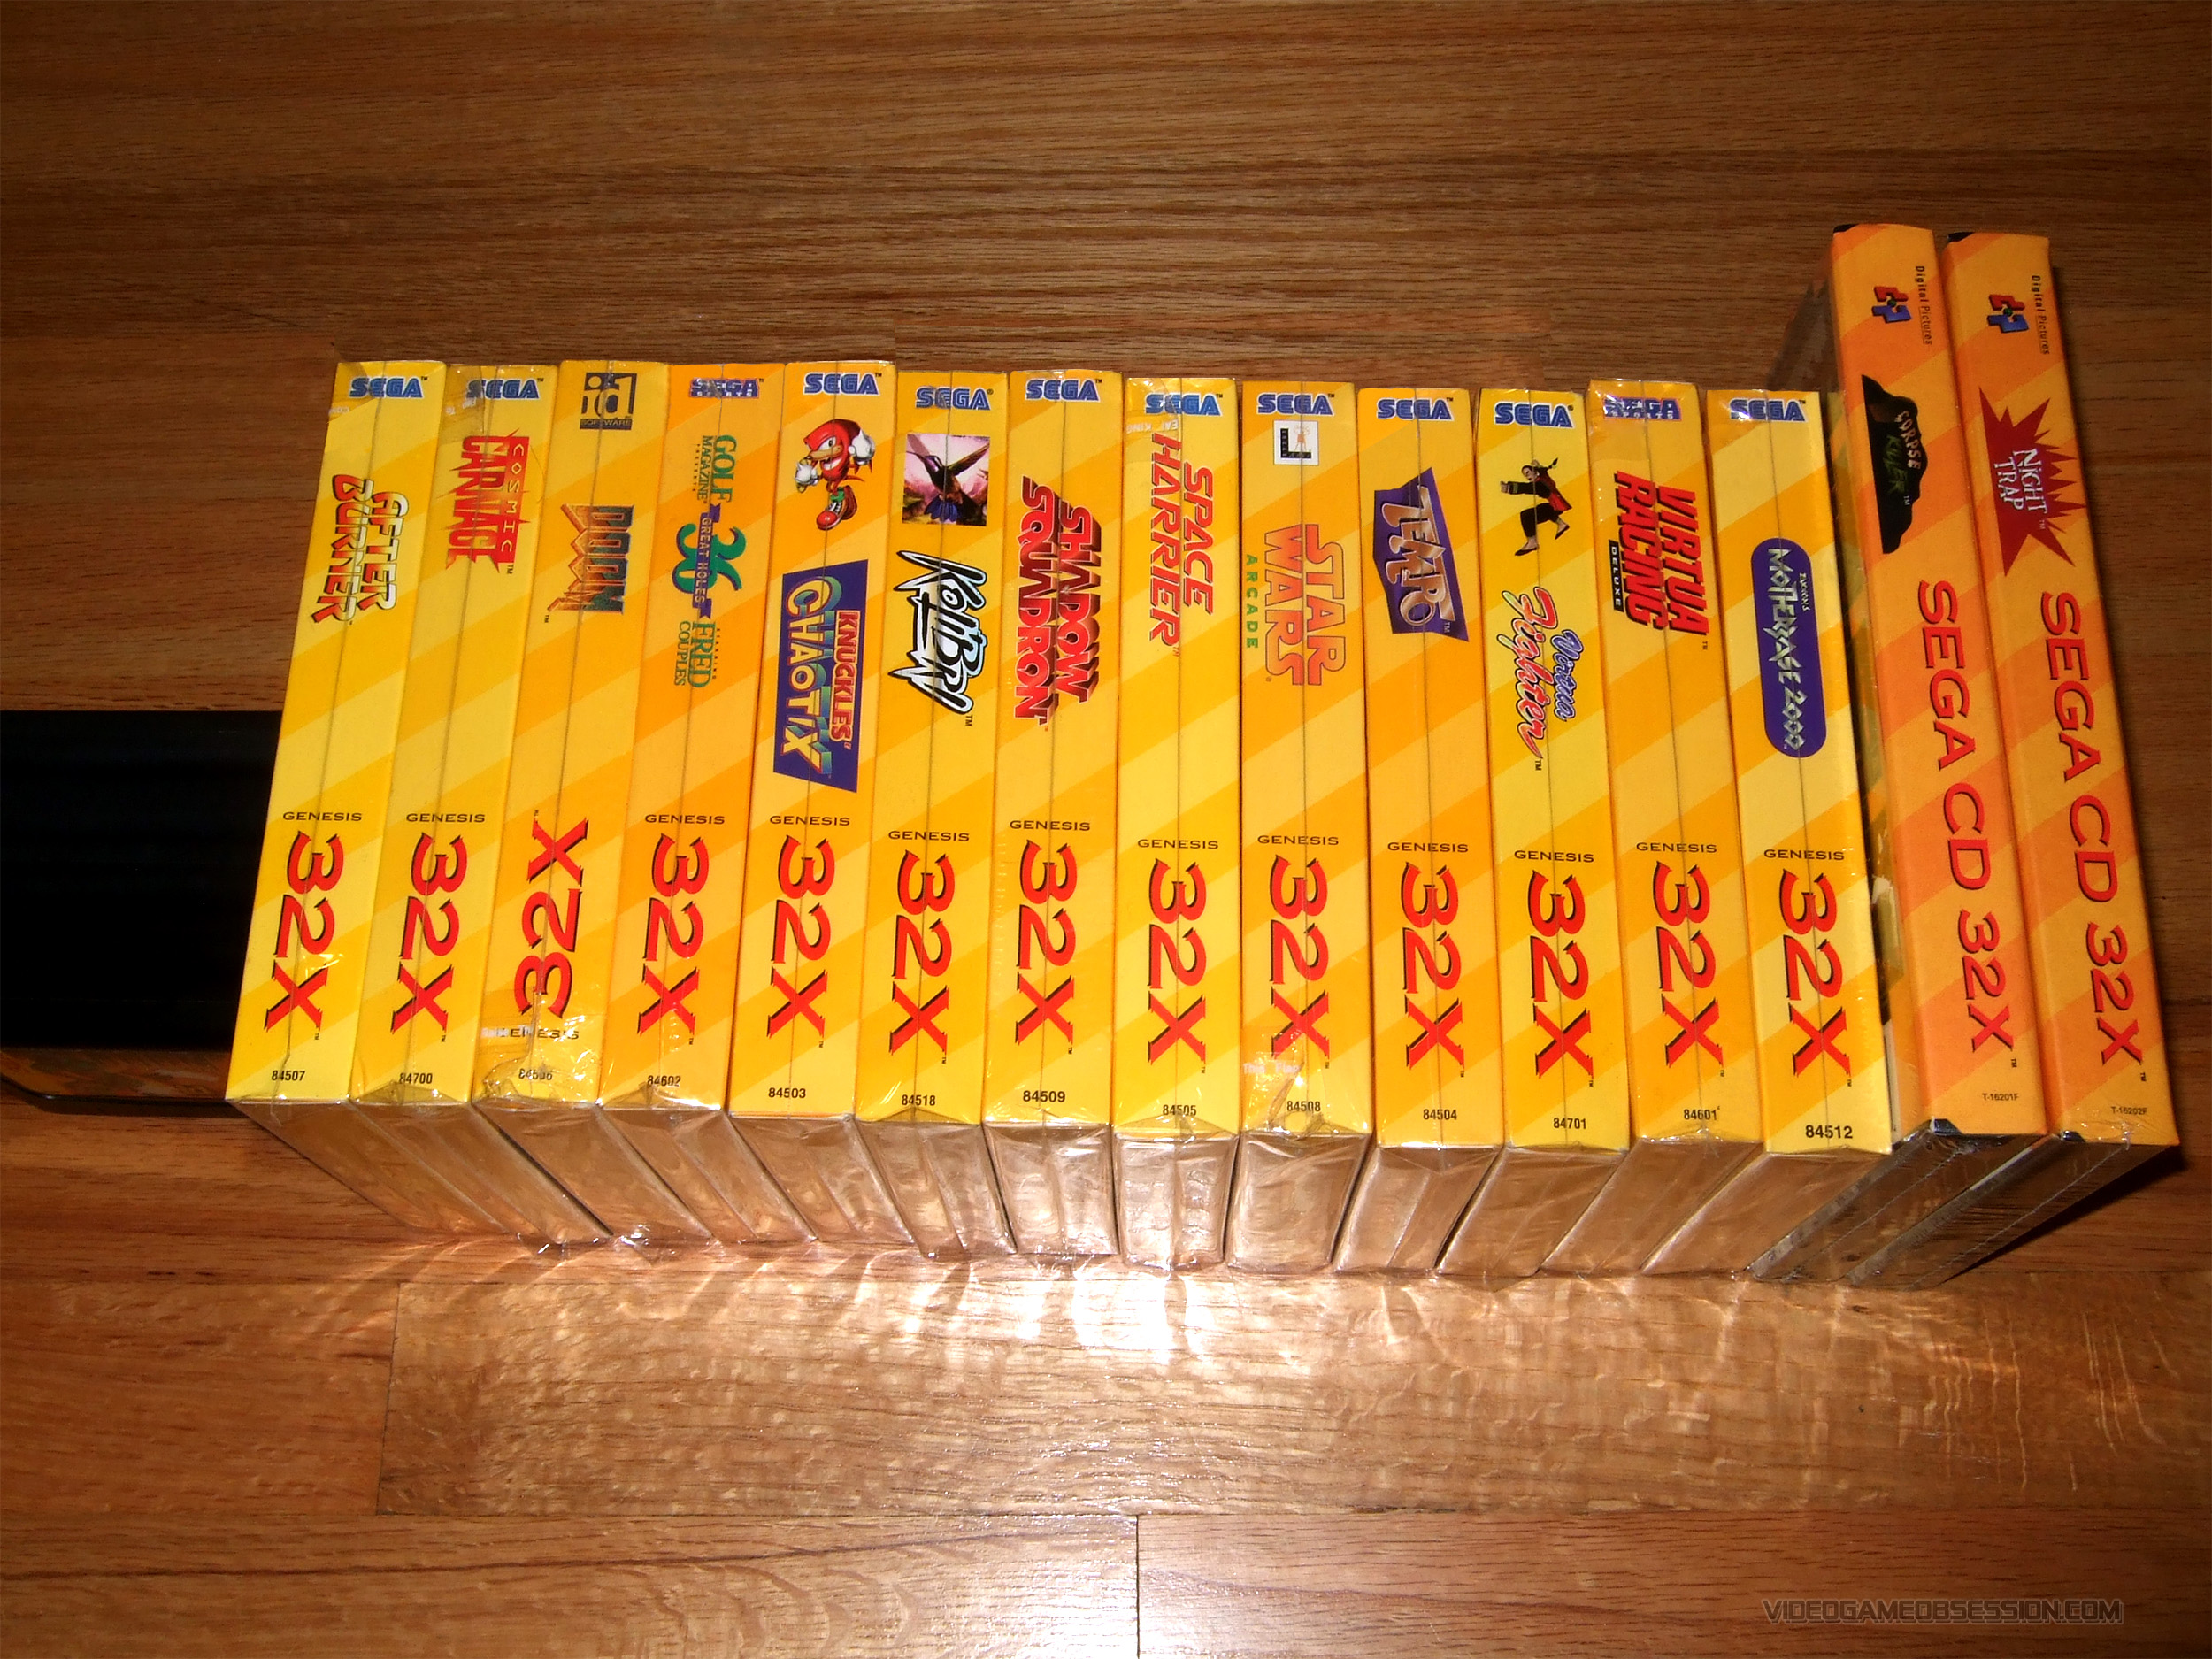 Sega 32x Collection Video Game Obsession C Matthew Henzel